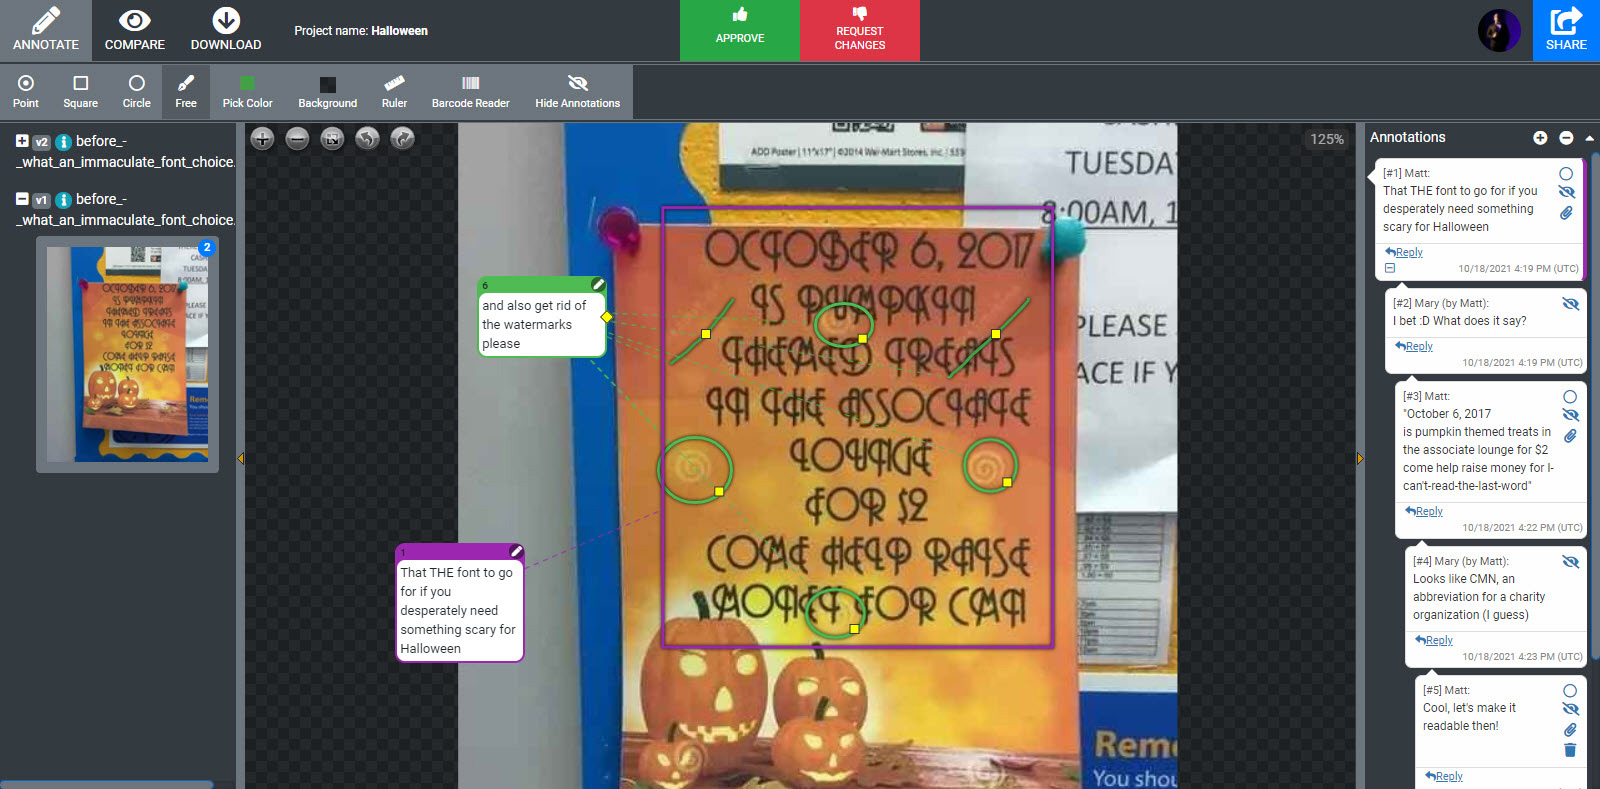 The annotations to the halloween scary font